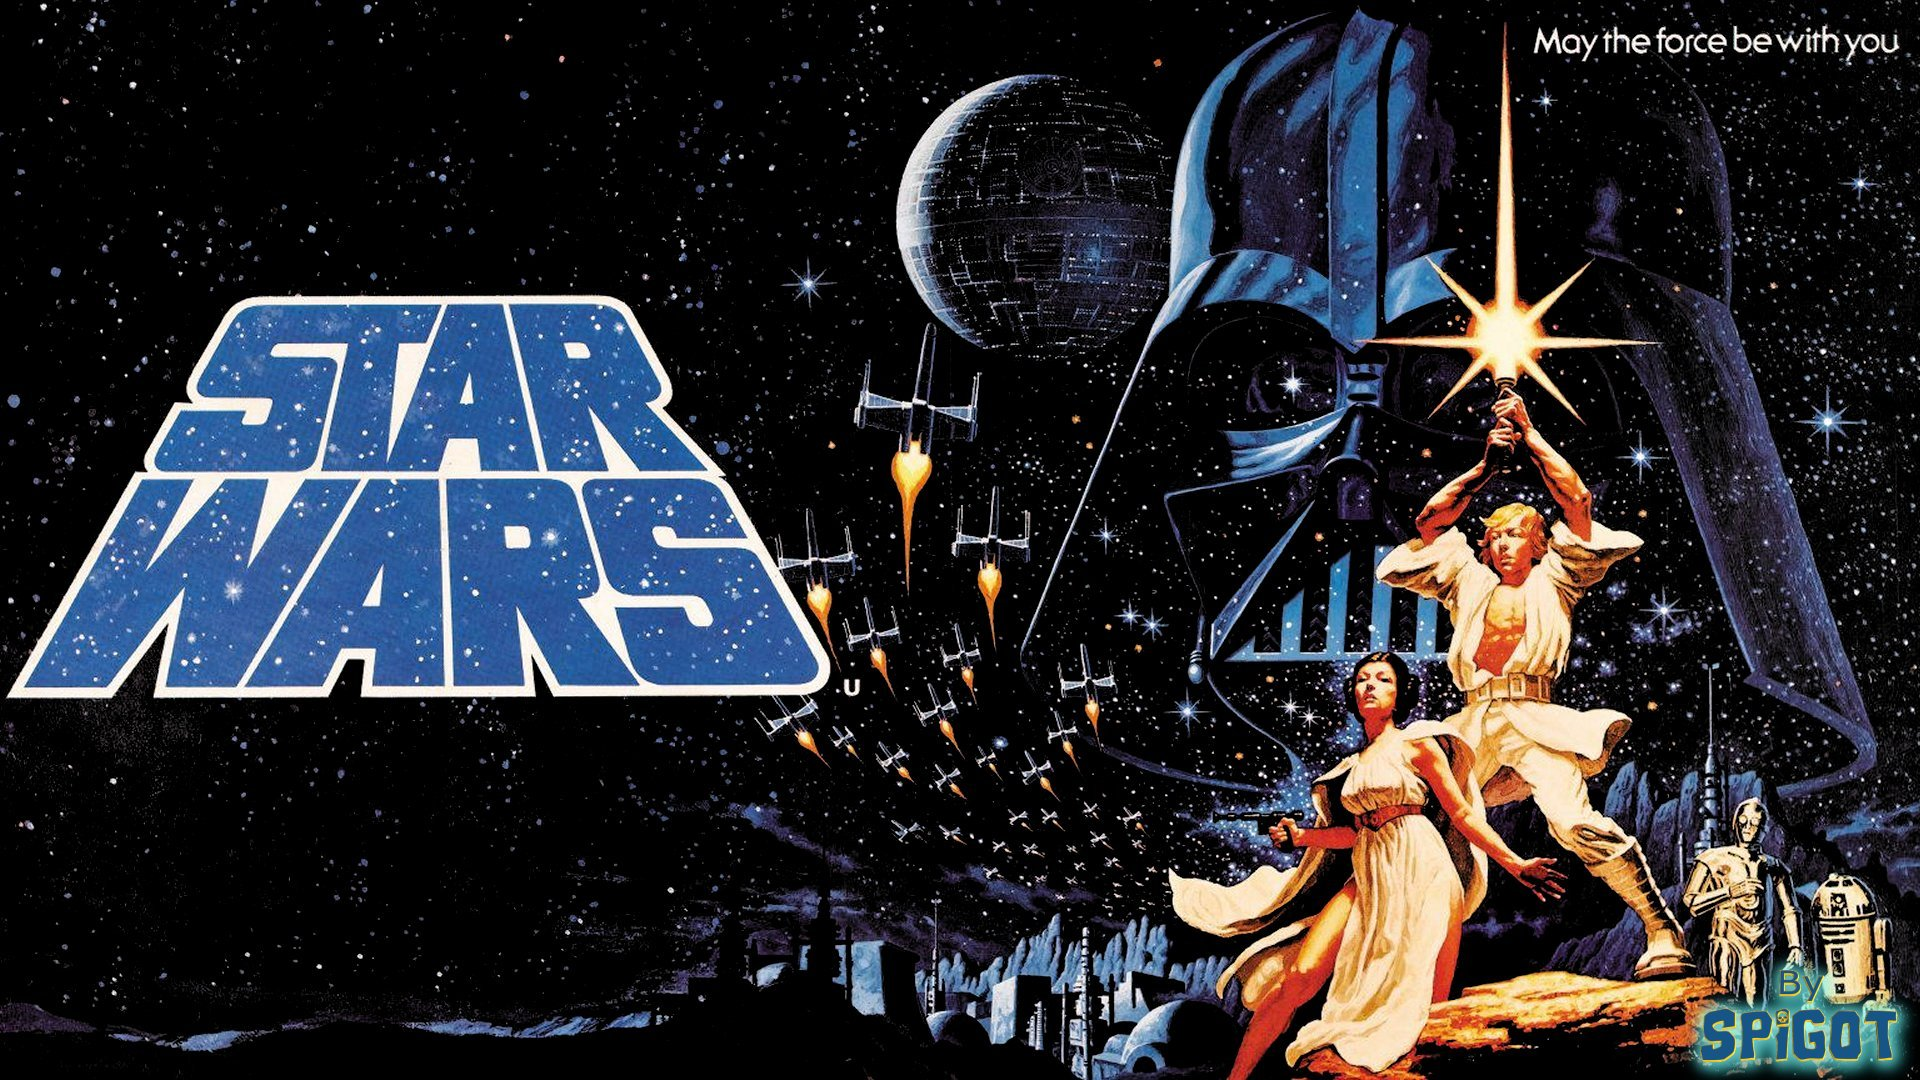 Star Wars Poster Wallpaper 116831